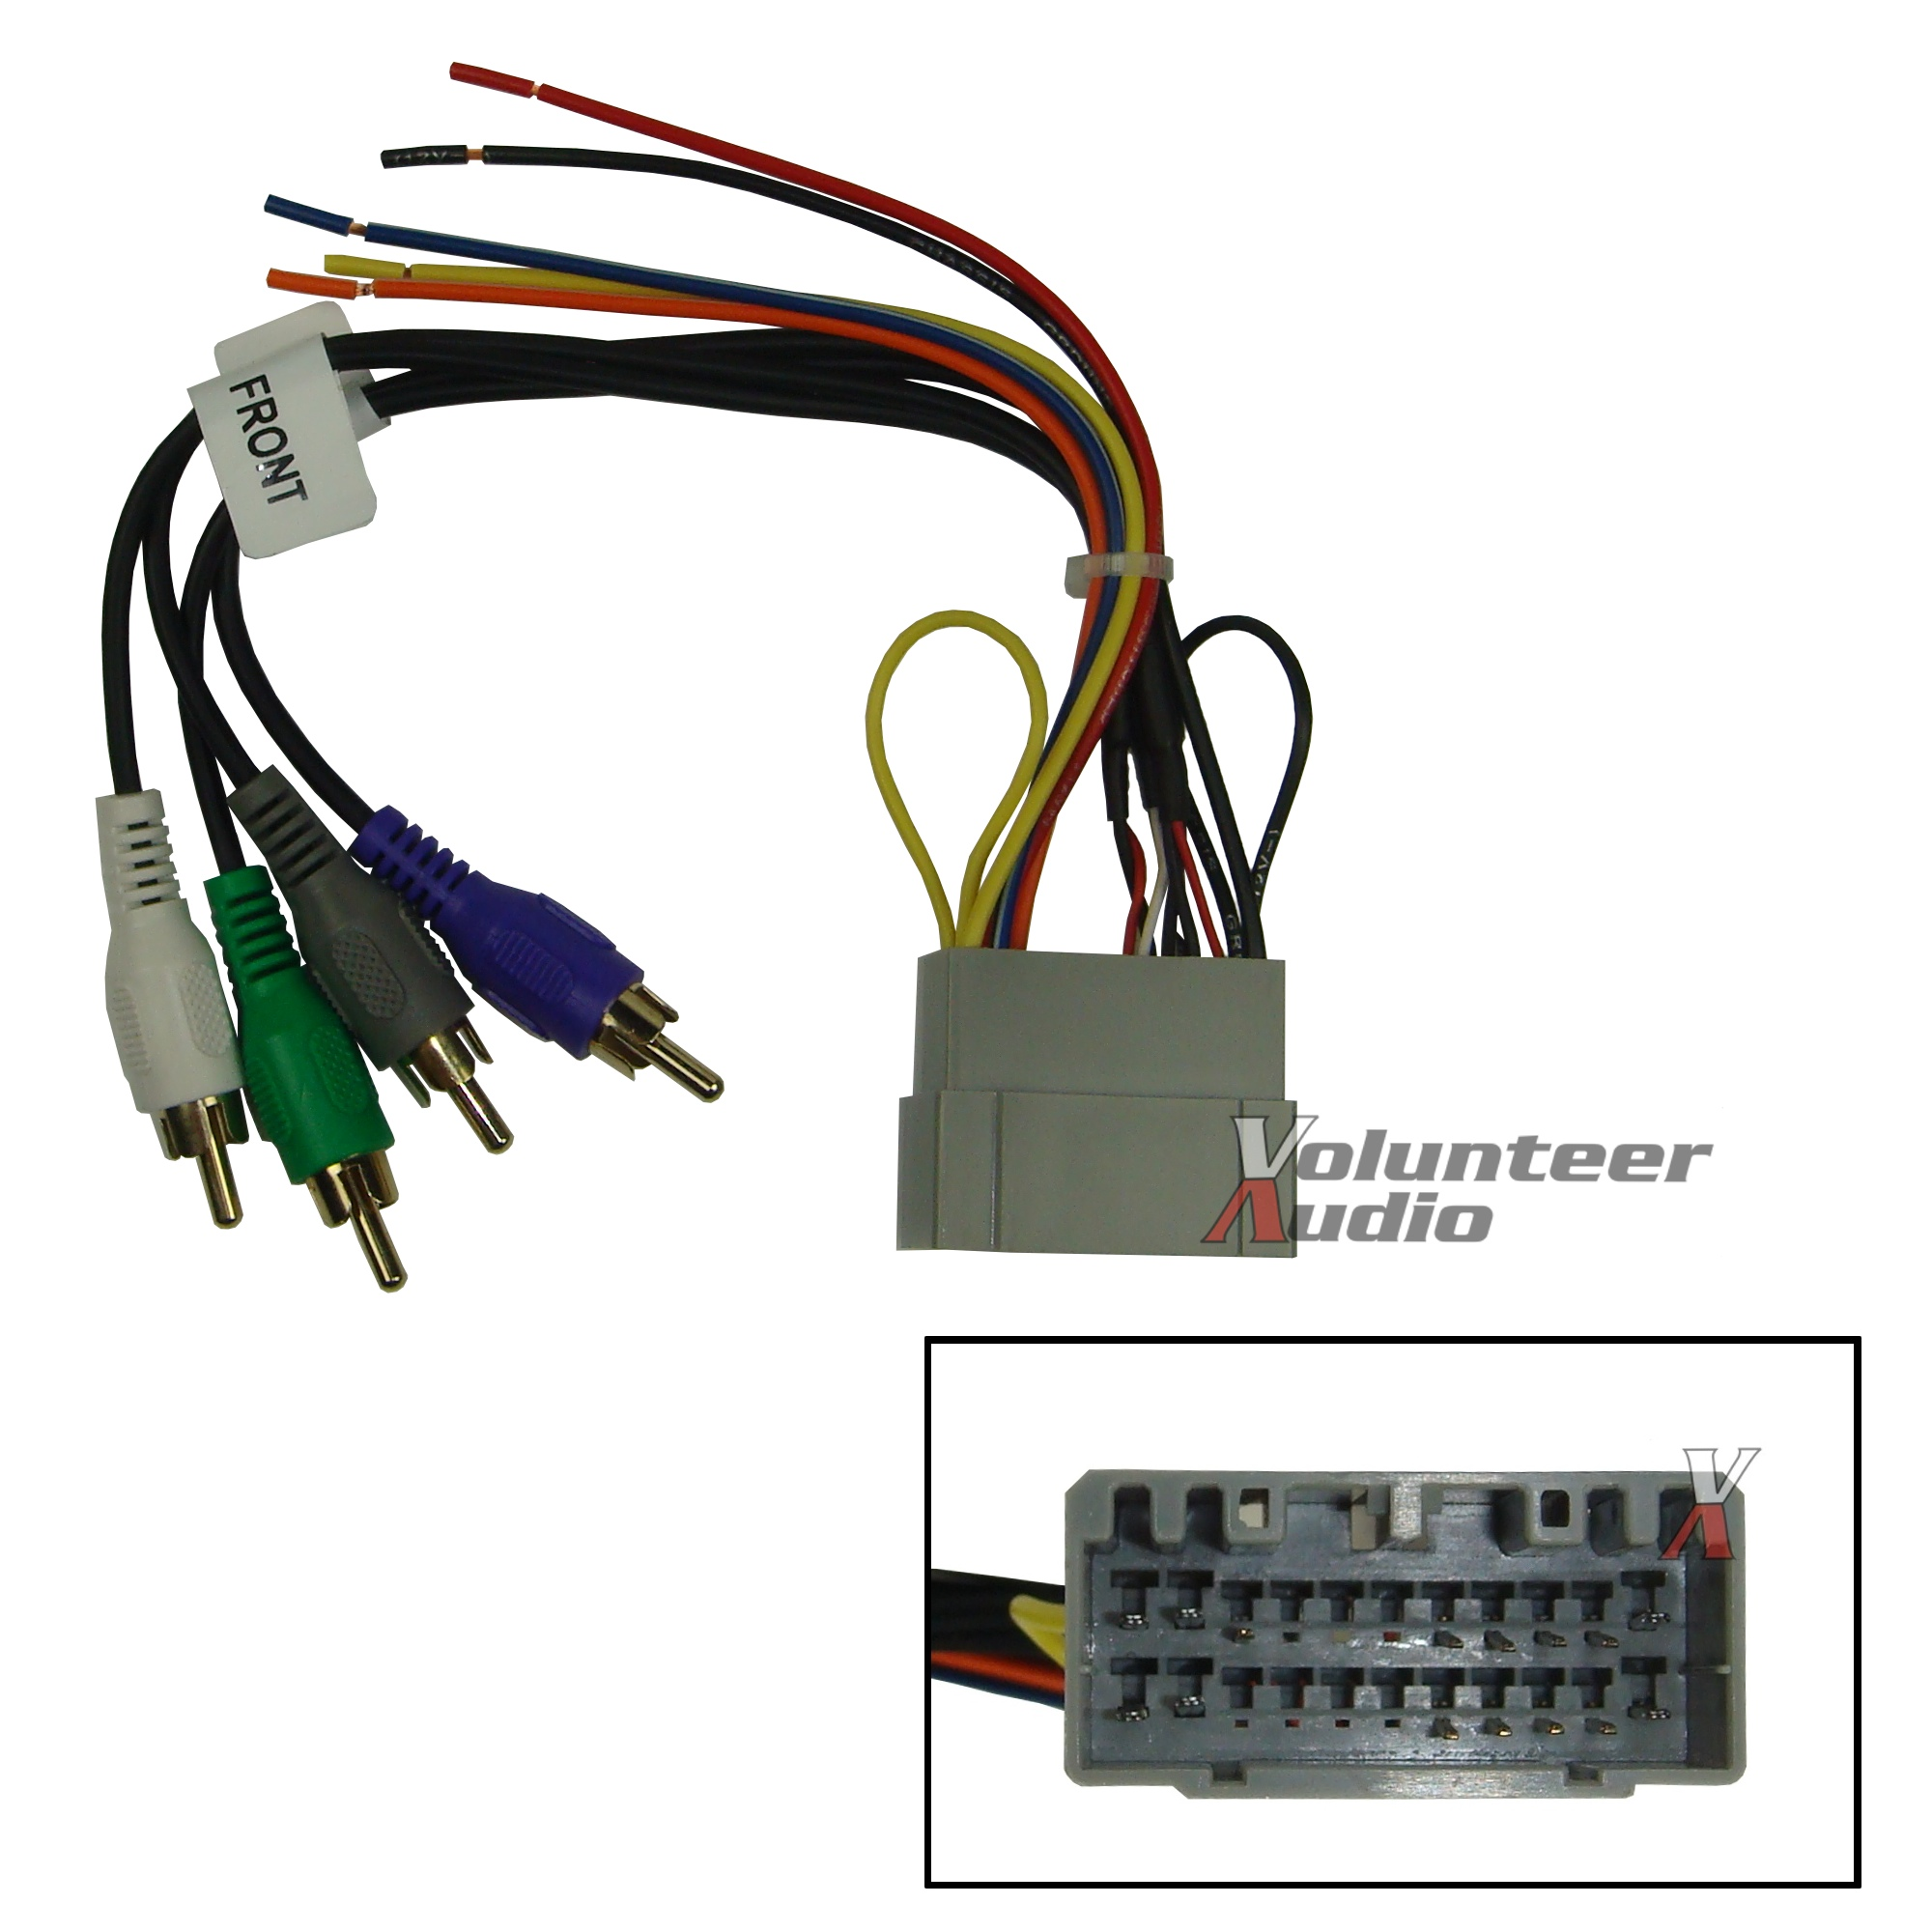 wiring diagrams for car stereo installations whirlpool gas dryer diagram dodge jeep cd player harness wire